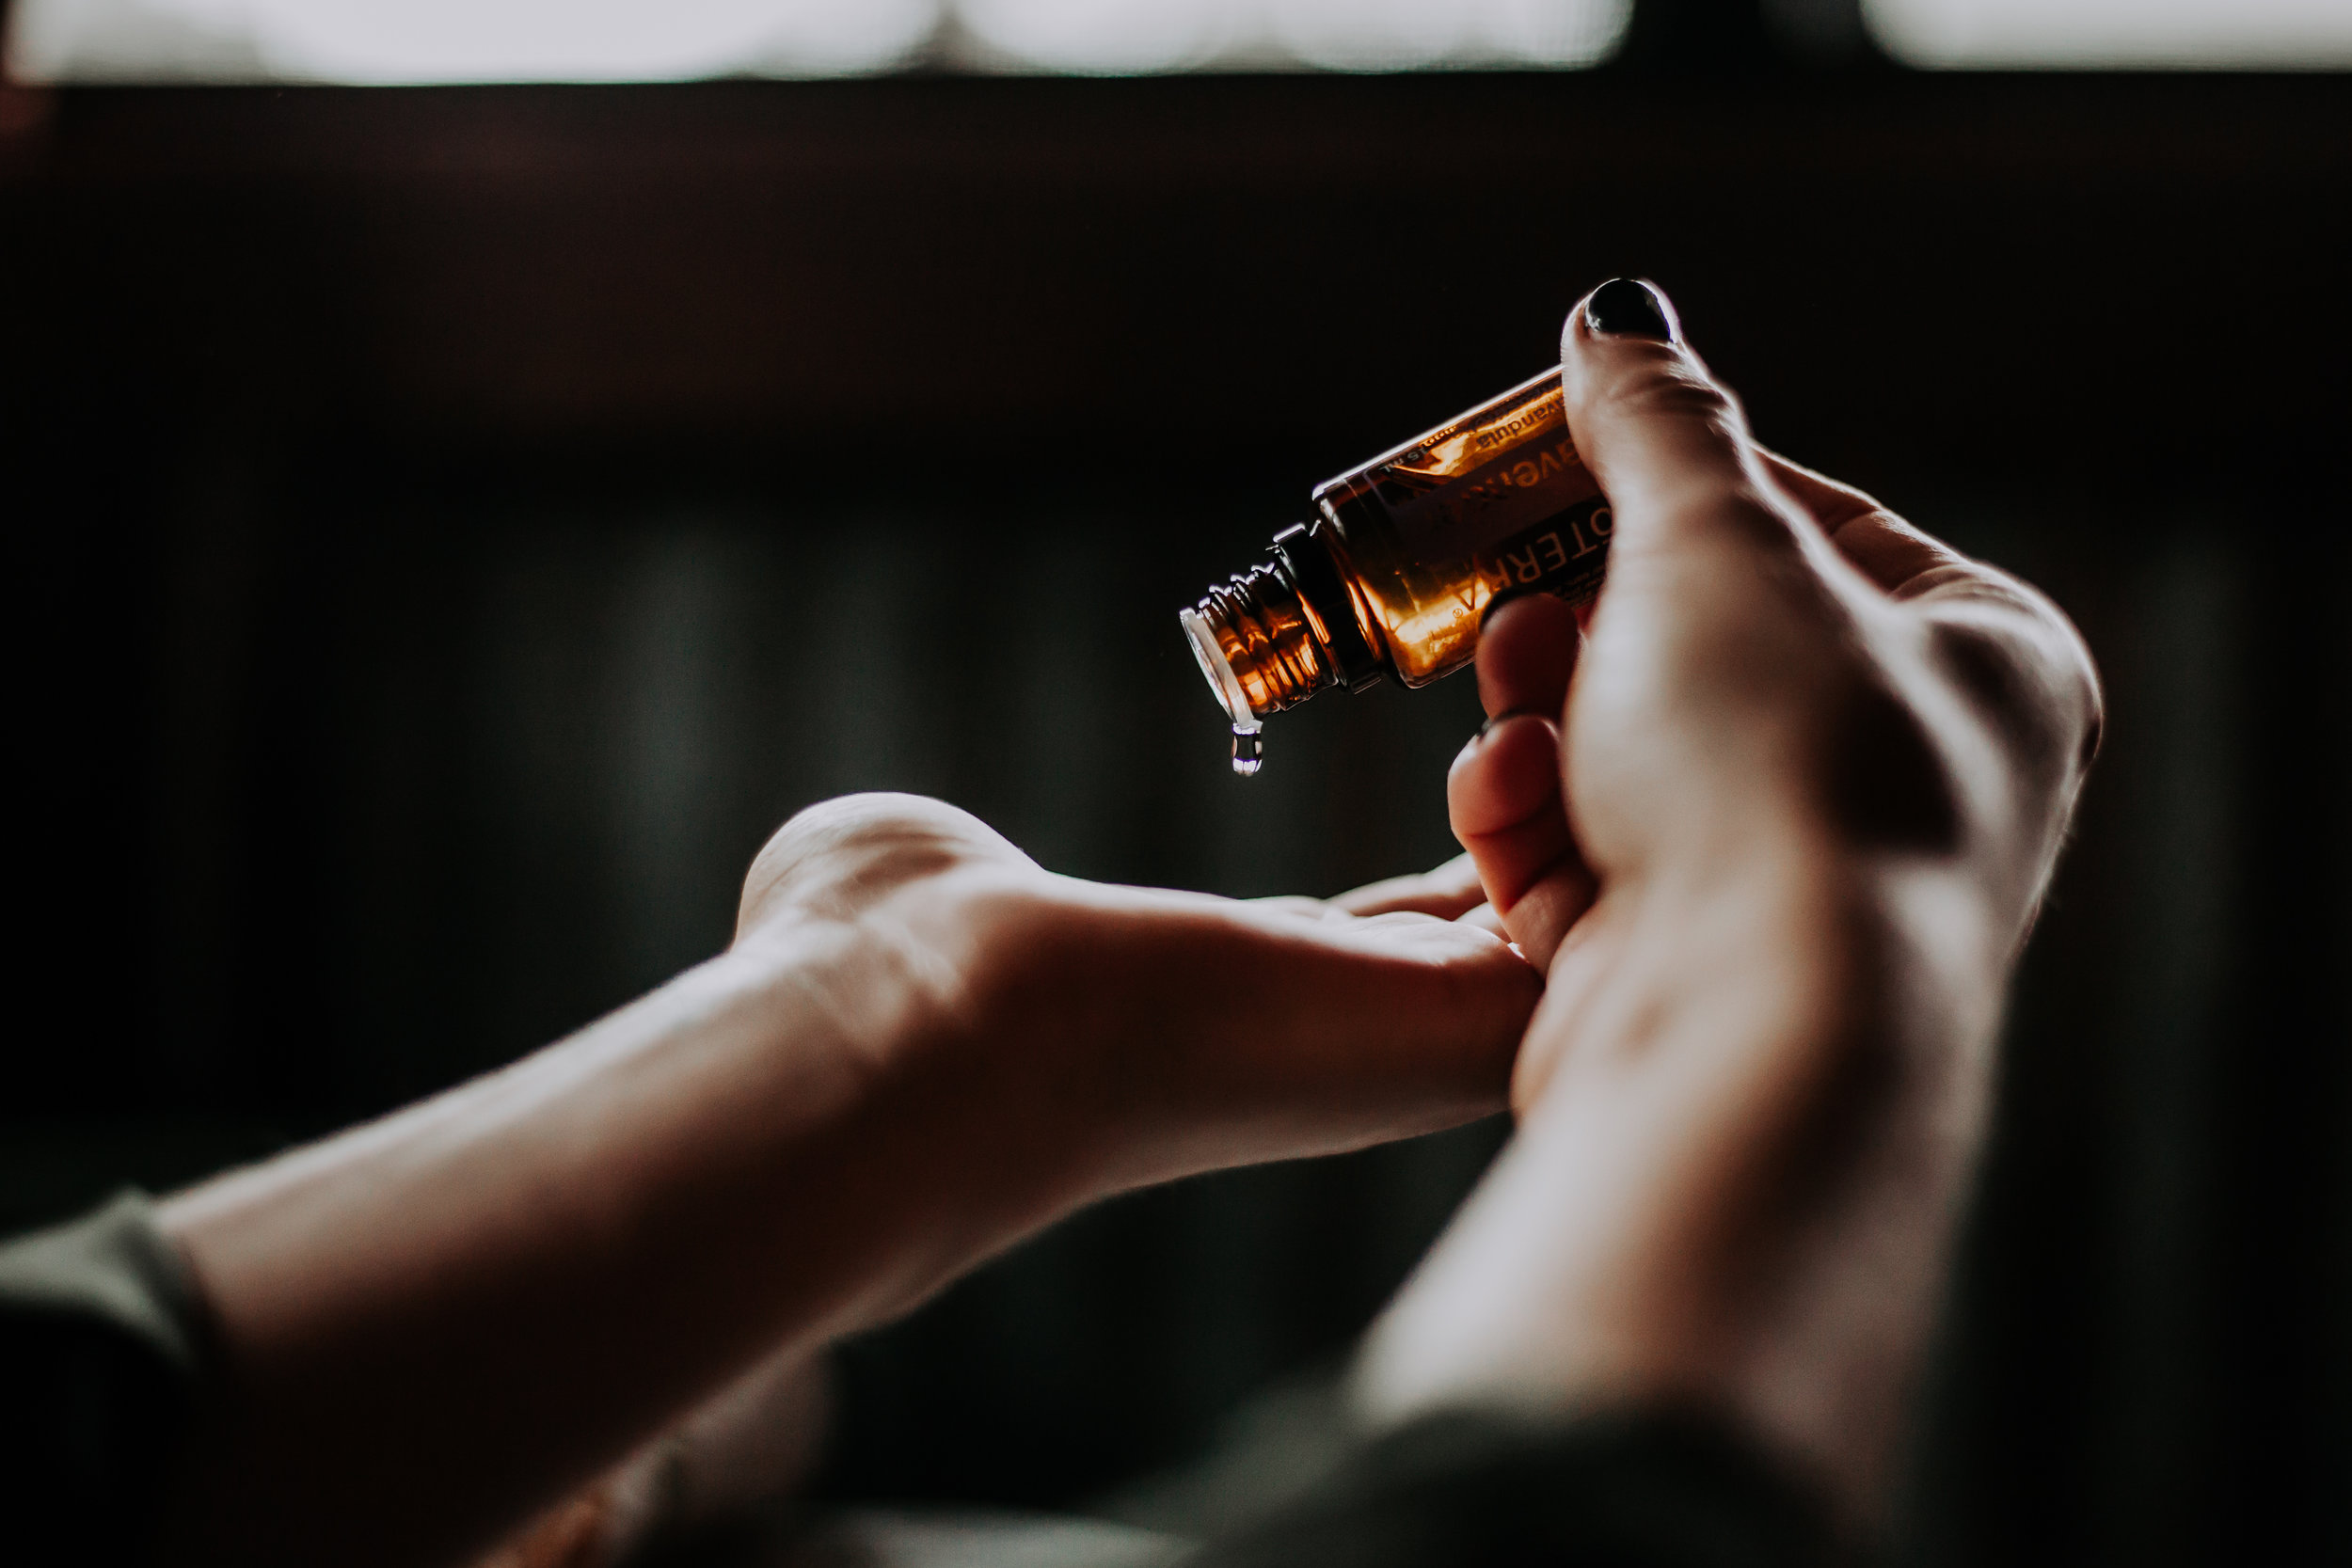 Essential Oils:  How to use - Pure, therapeutic essential oils are a pivotal part of my daily routine. I use them for everything from cleaning to supporting my overall health. For more information about essential oils and the various ways that I use them, check out the blog posts below.